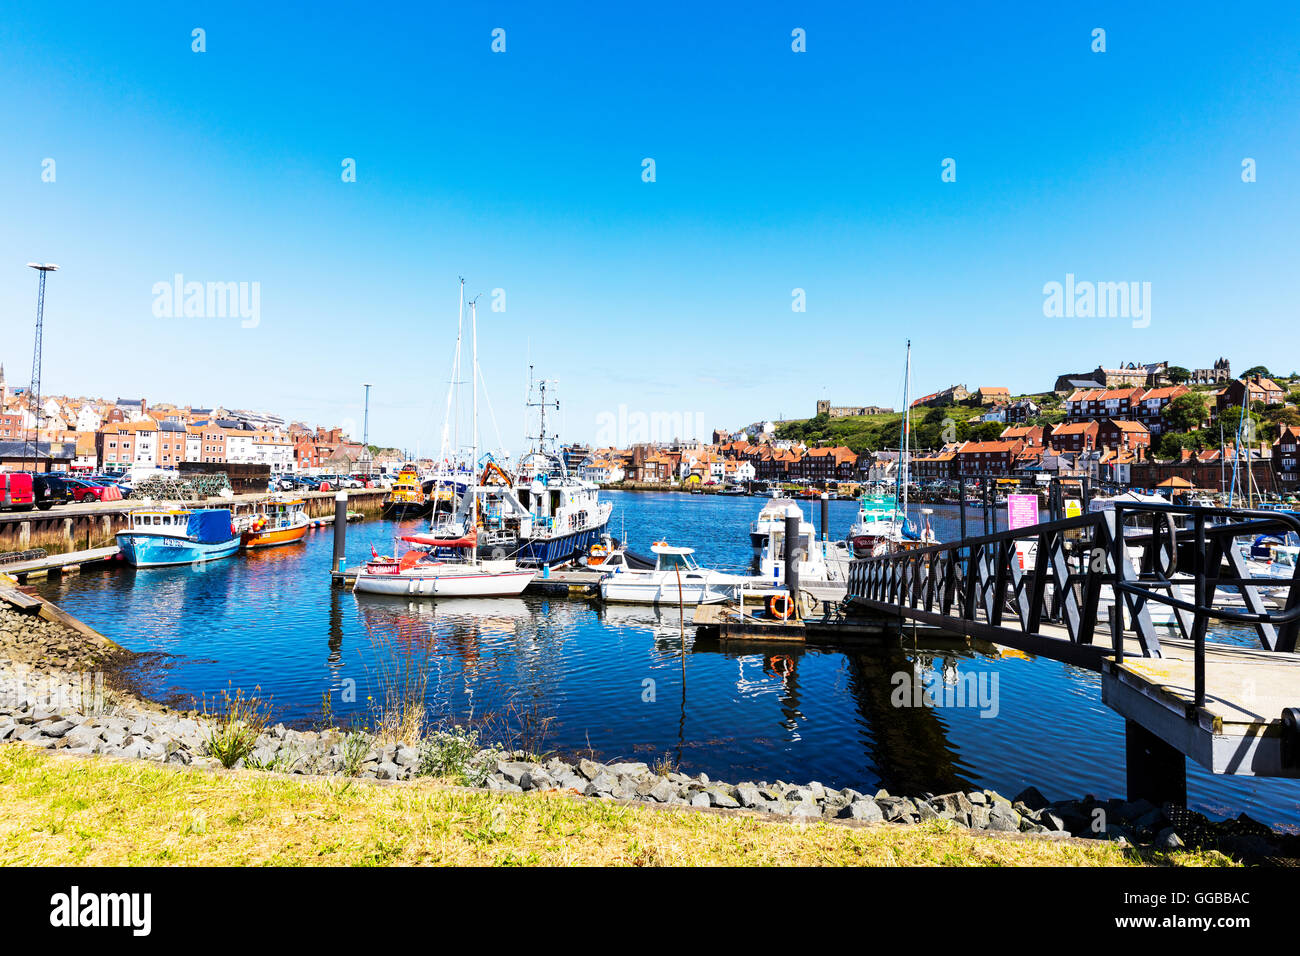 Fishing boats Whitby Town North Yorkshire Coast UK England moored in harbour harbor homes overlooking sea towns - Stock Image